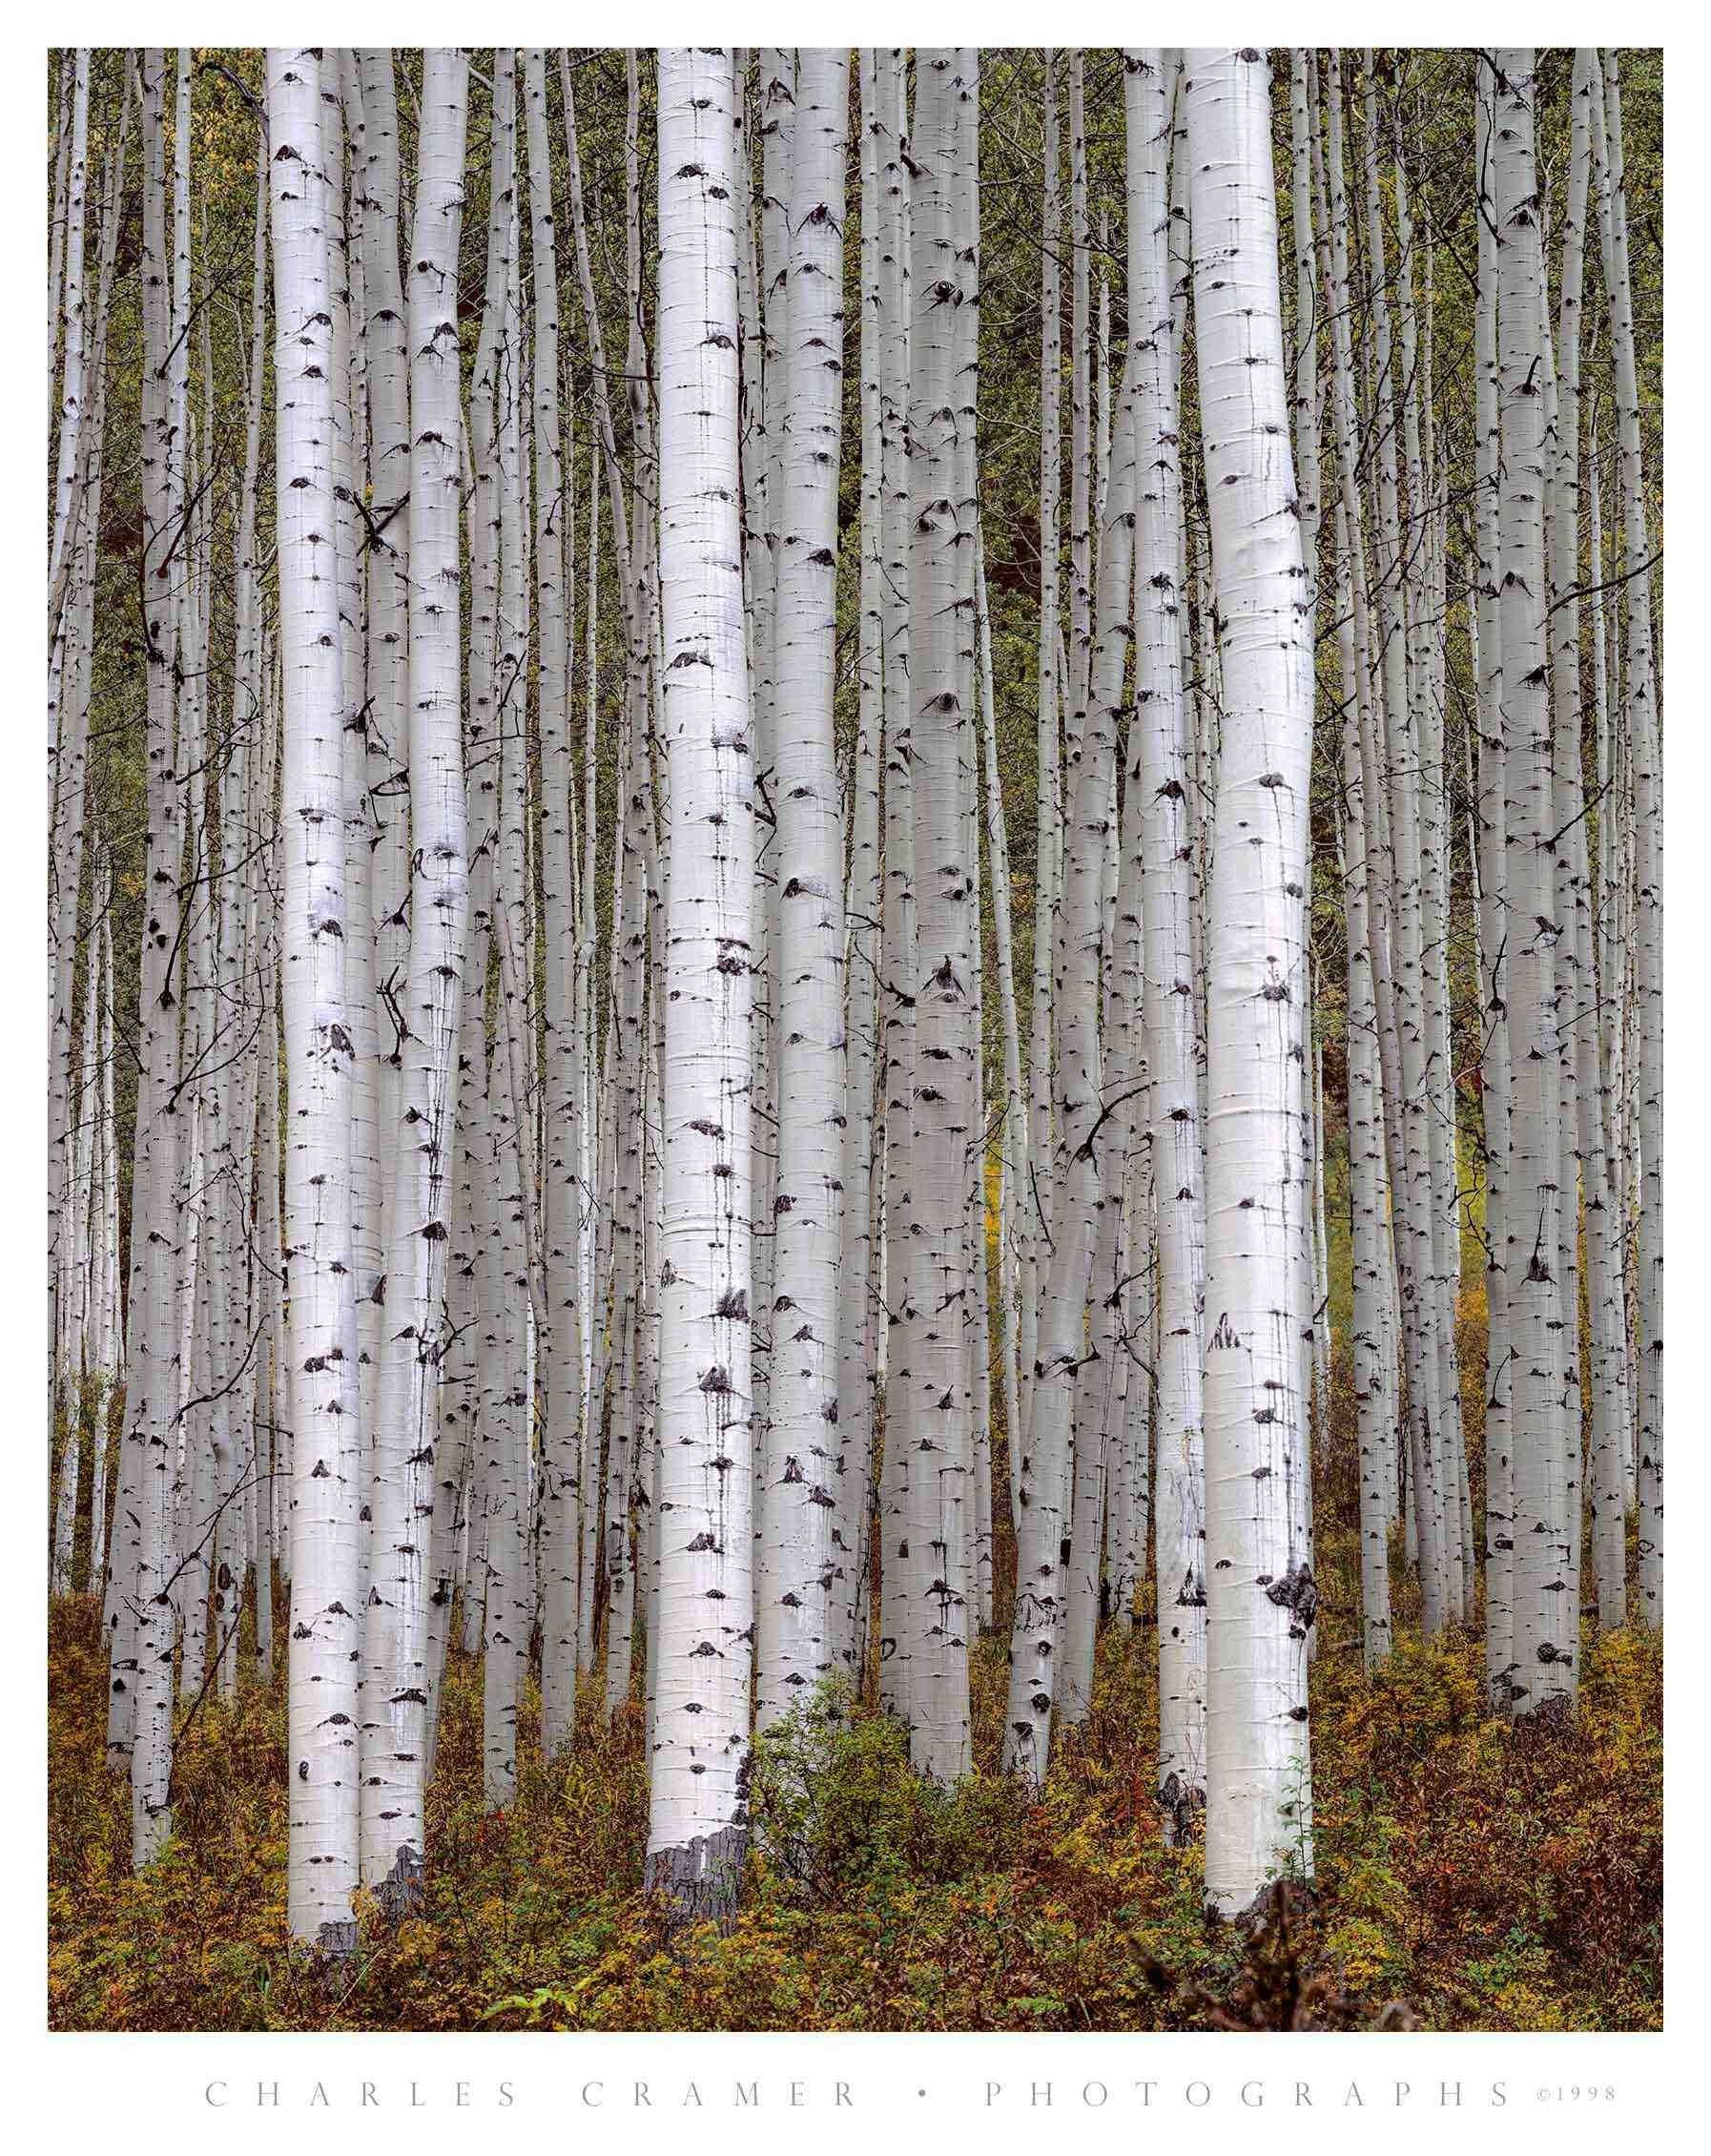 Bright Aspen Trunks, Aspen, Utah